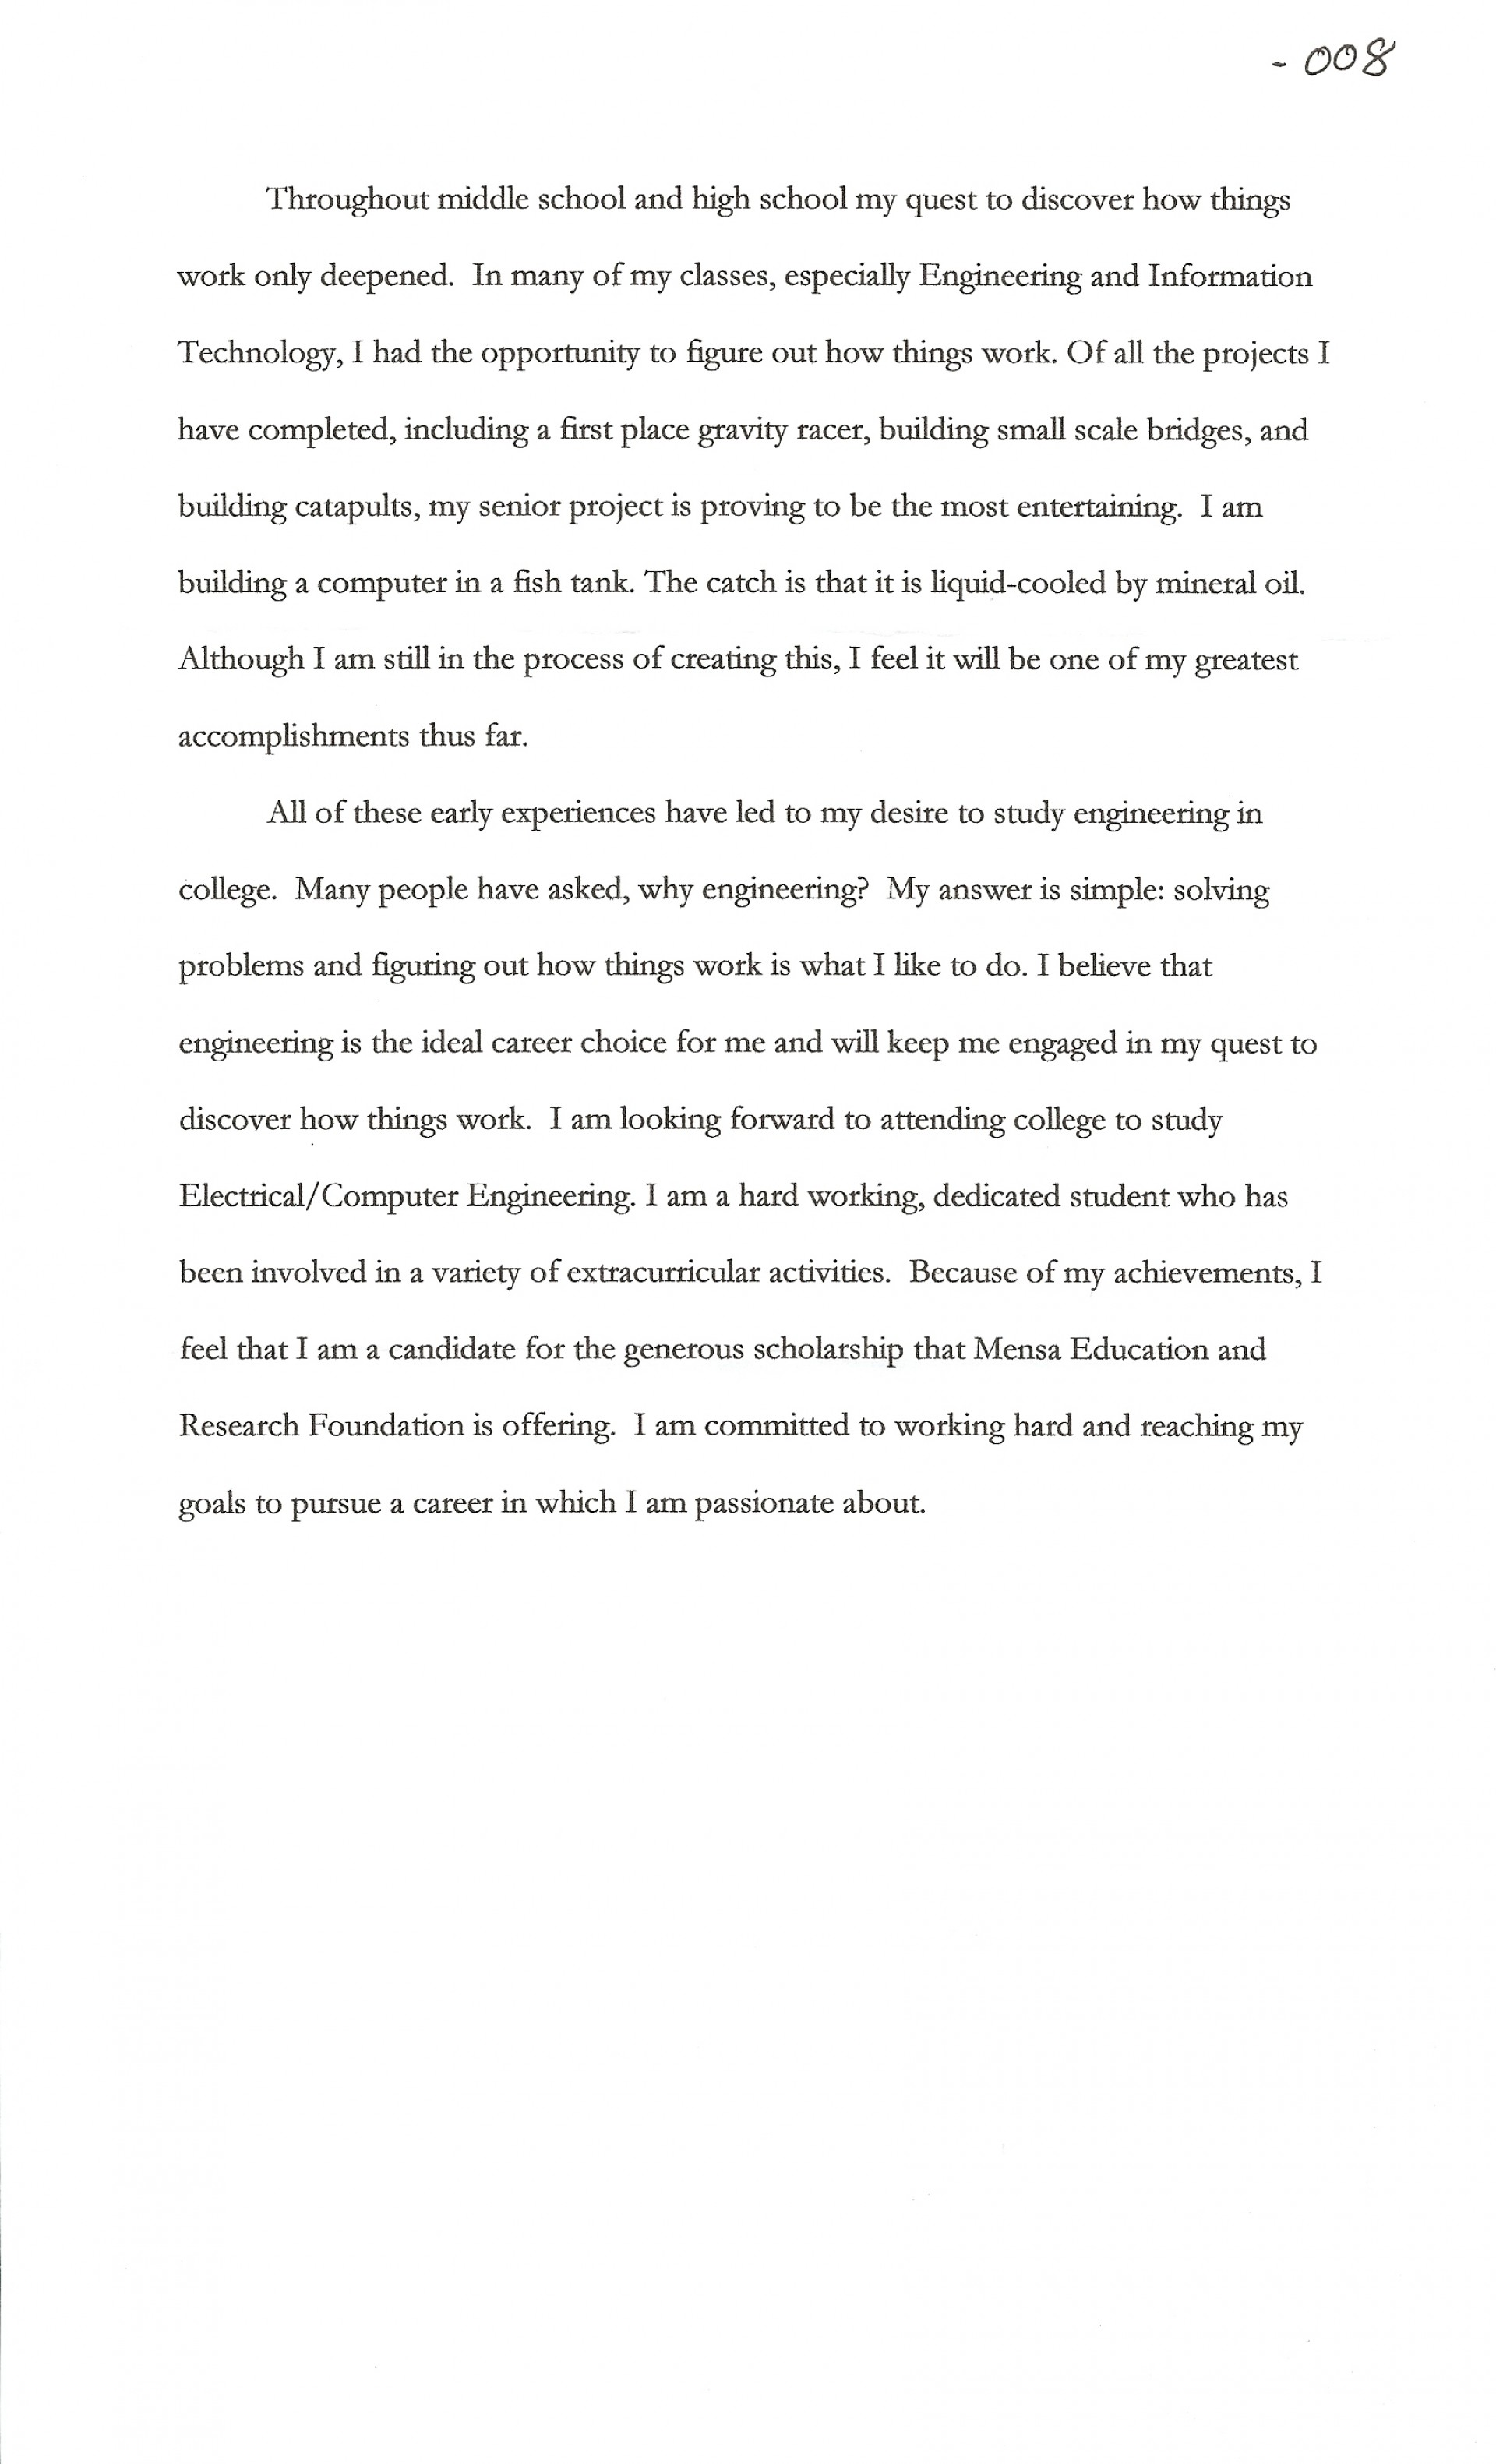 Are we slaves to technology essay